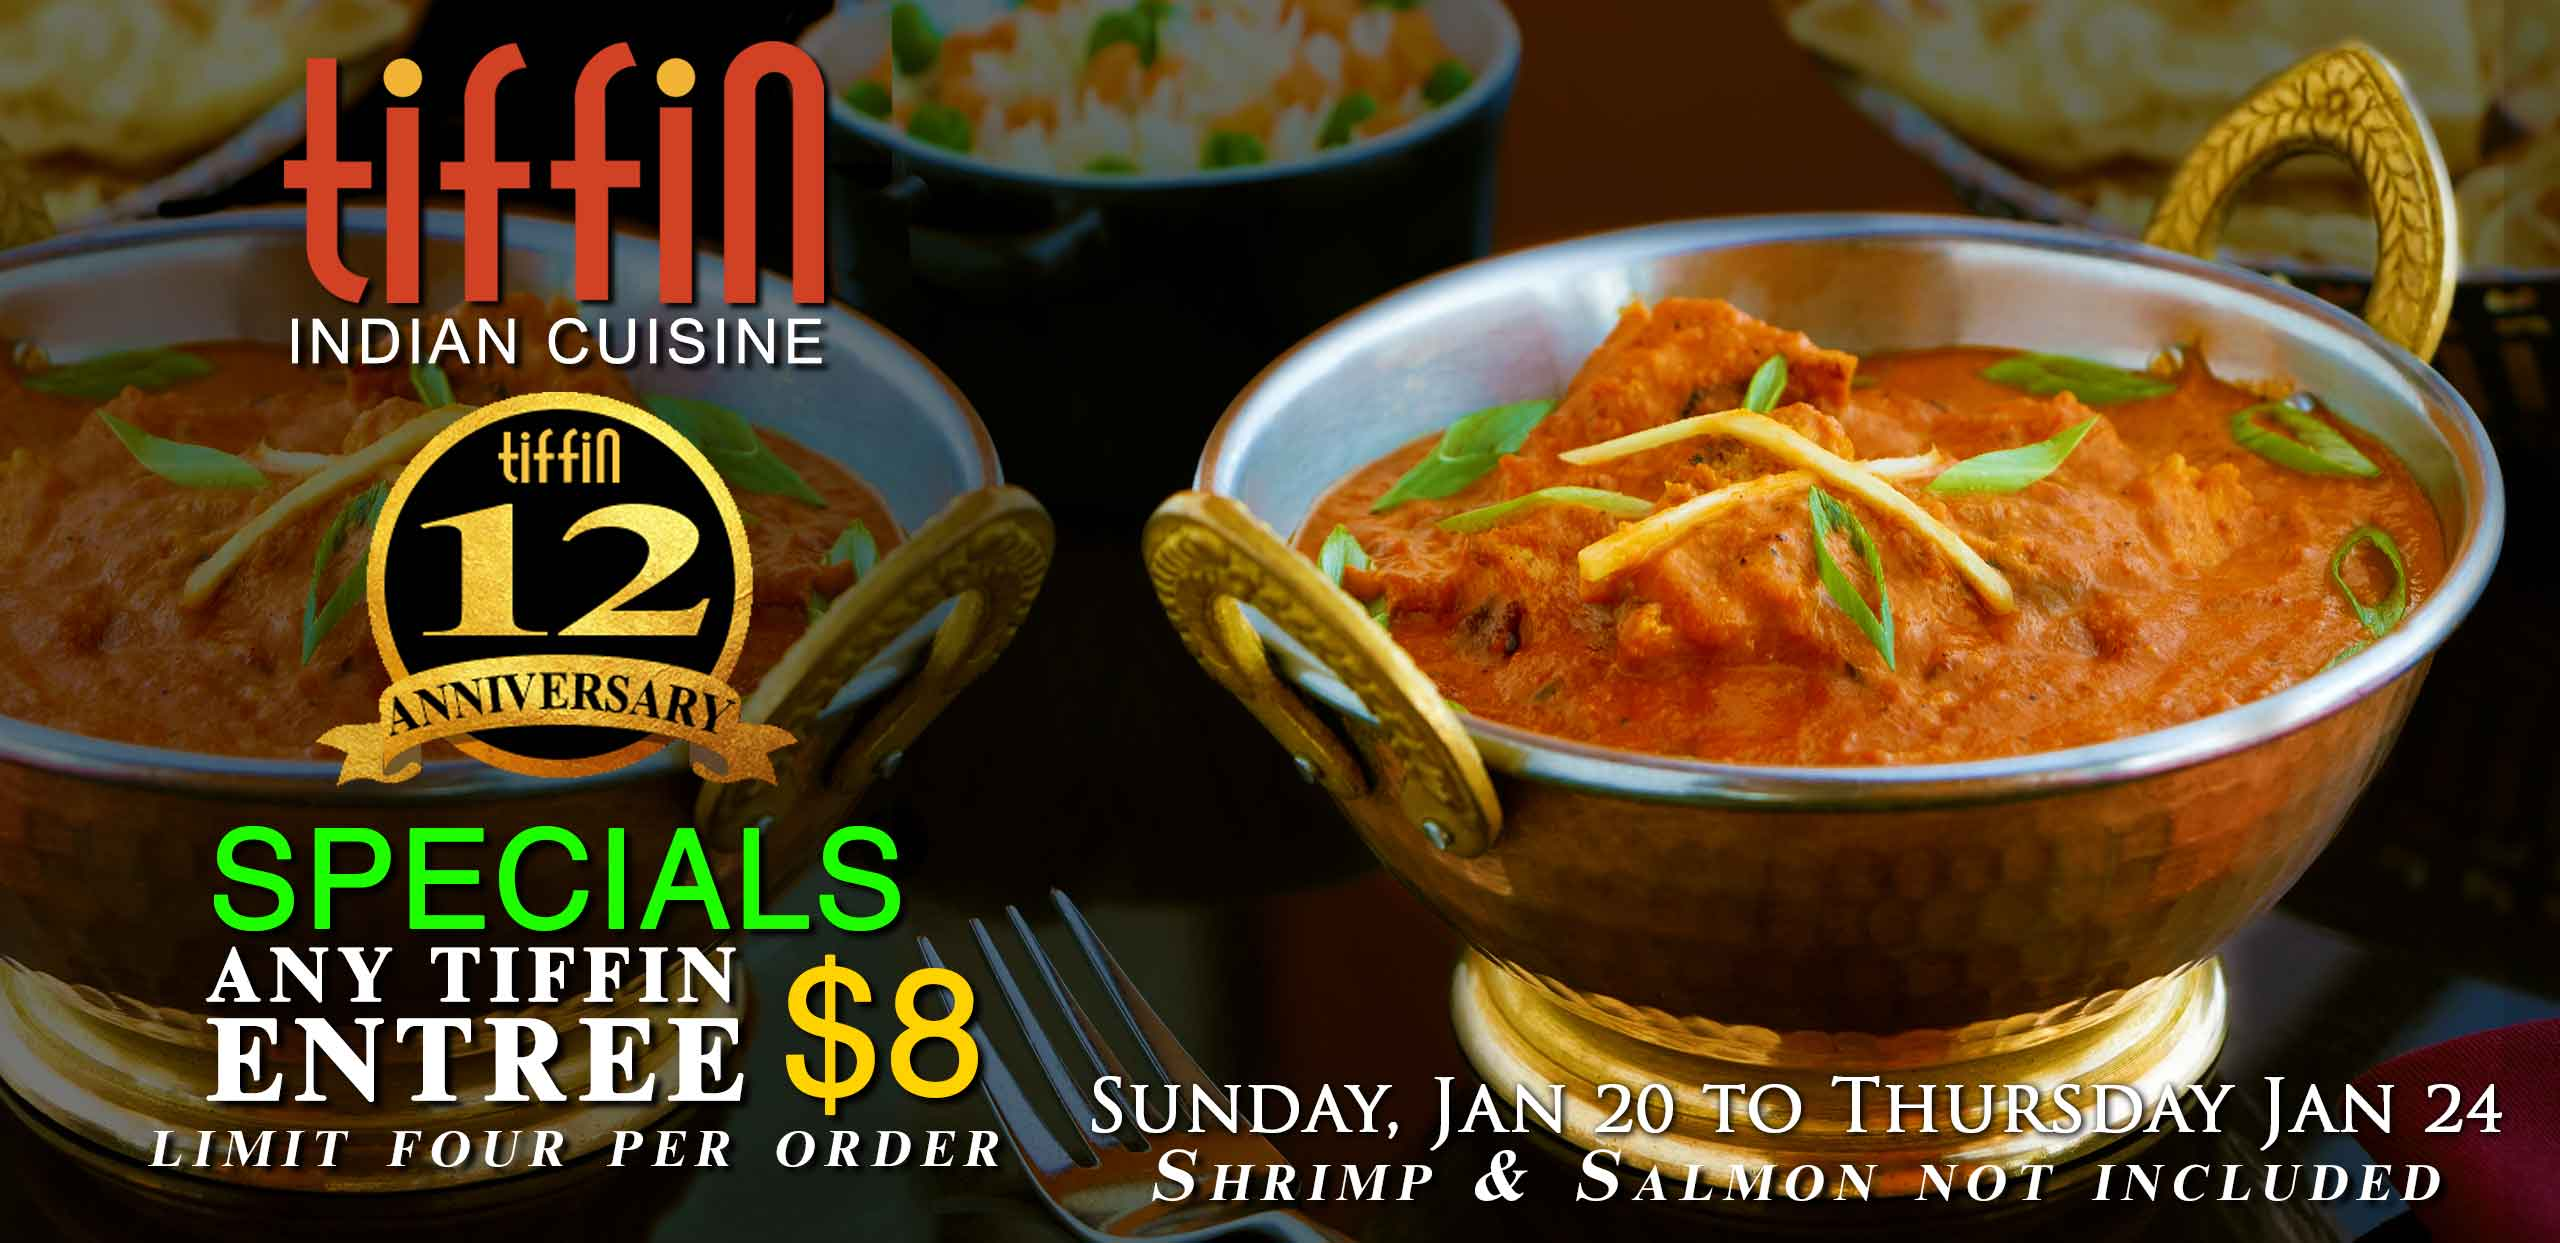 Indian Food Philadelphia, Mt Airy, Newtown Square, Cherry Hill, East Hanover, Tiffin Anniversary Specials any entree $8 King of Prussia, South Philly, Elkins Park Montgomery Delaware County